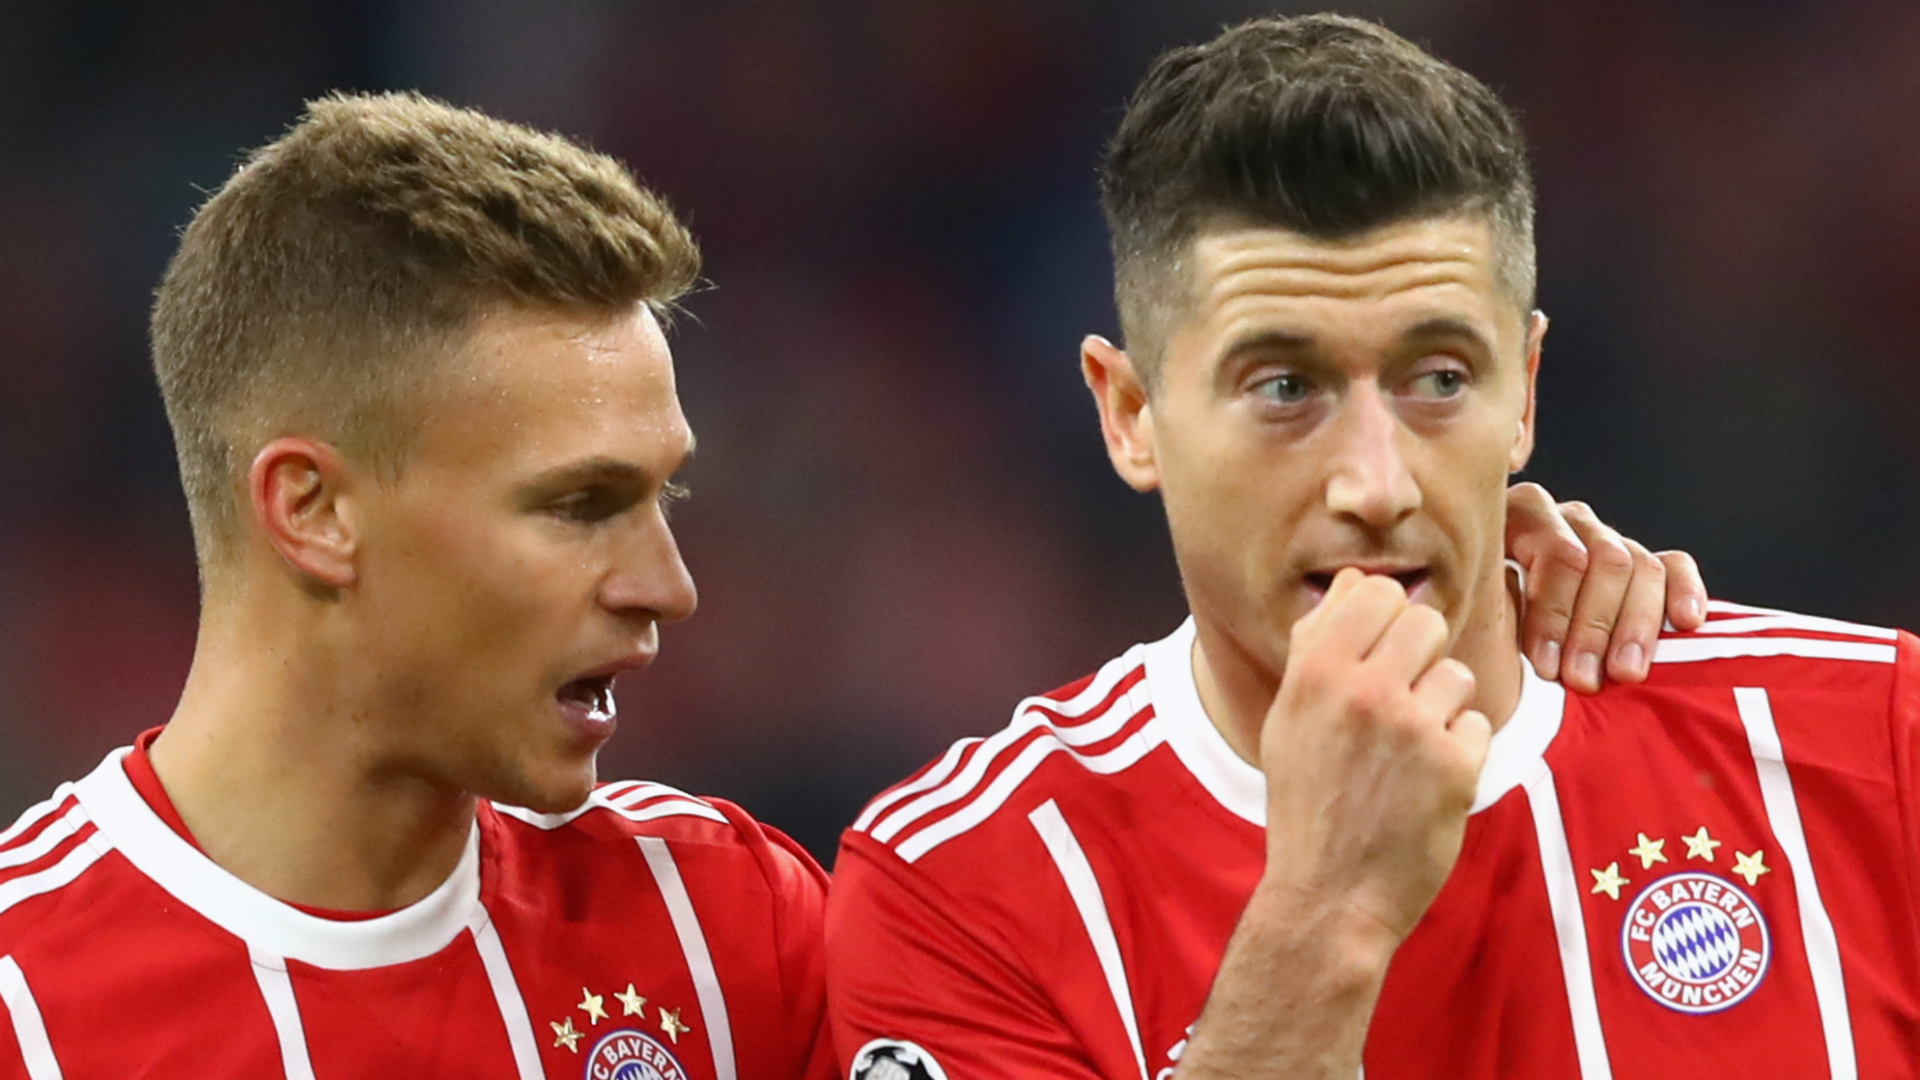 Bayern Munich's Robert Lewandowski Slams His Own Club